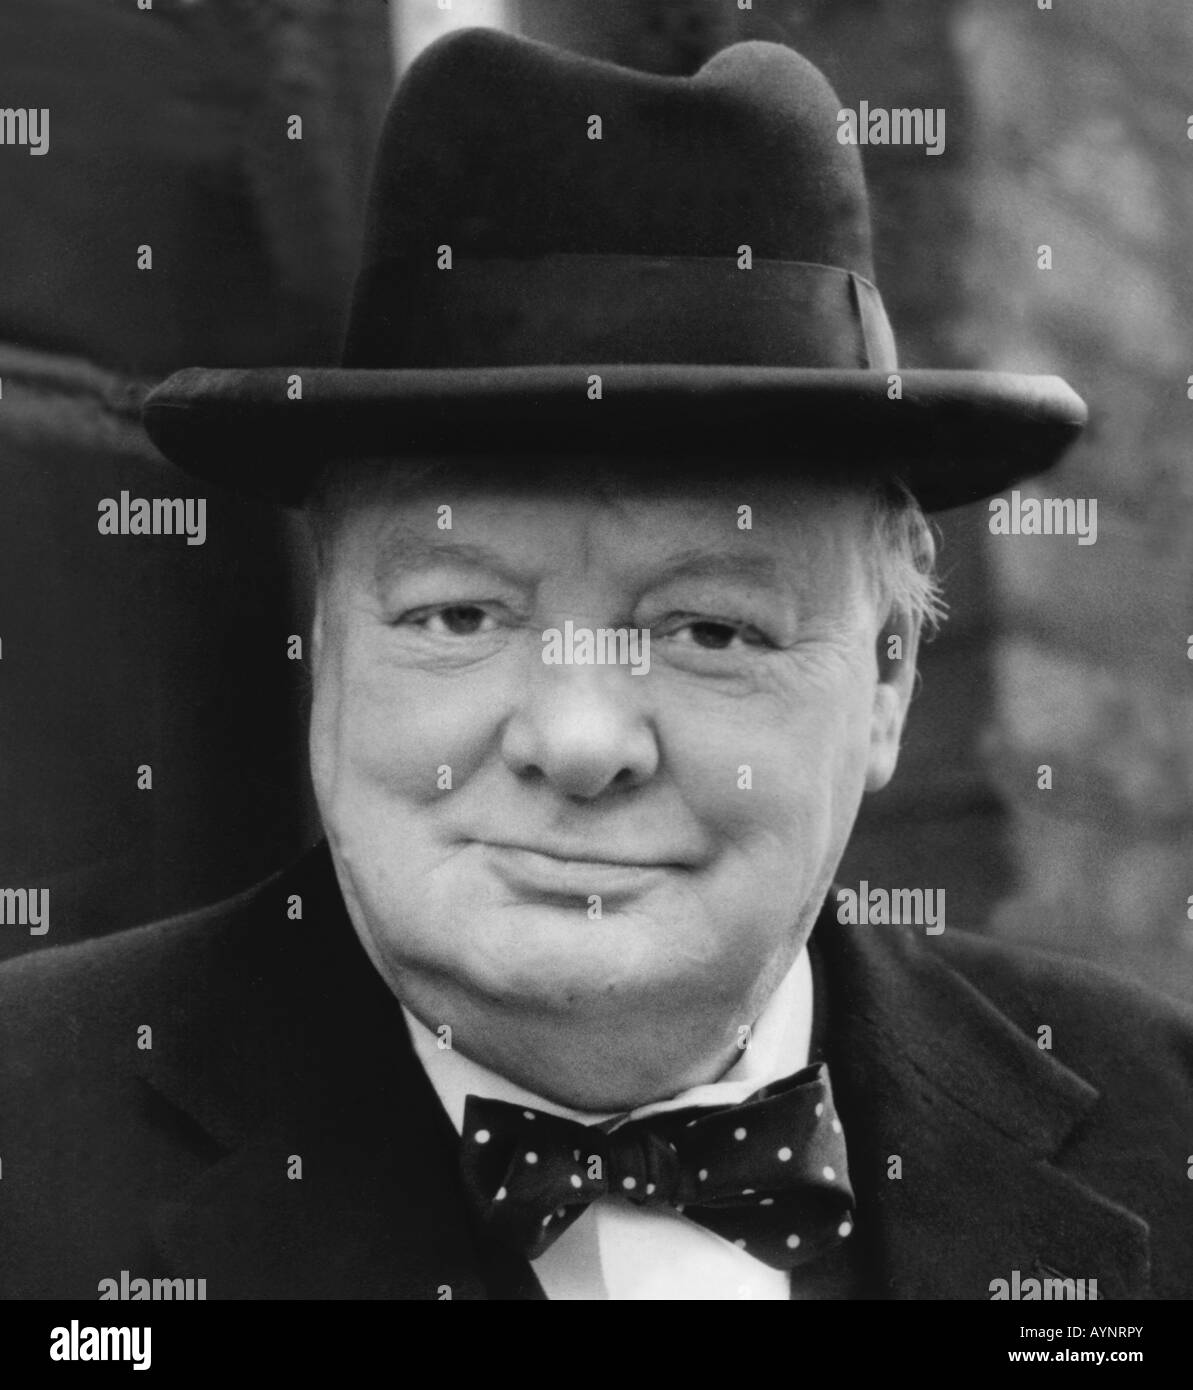 Sir Winston Churchill British wartime leader 1940 s image - Stock Image